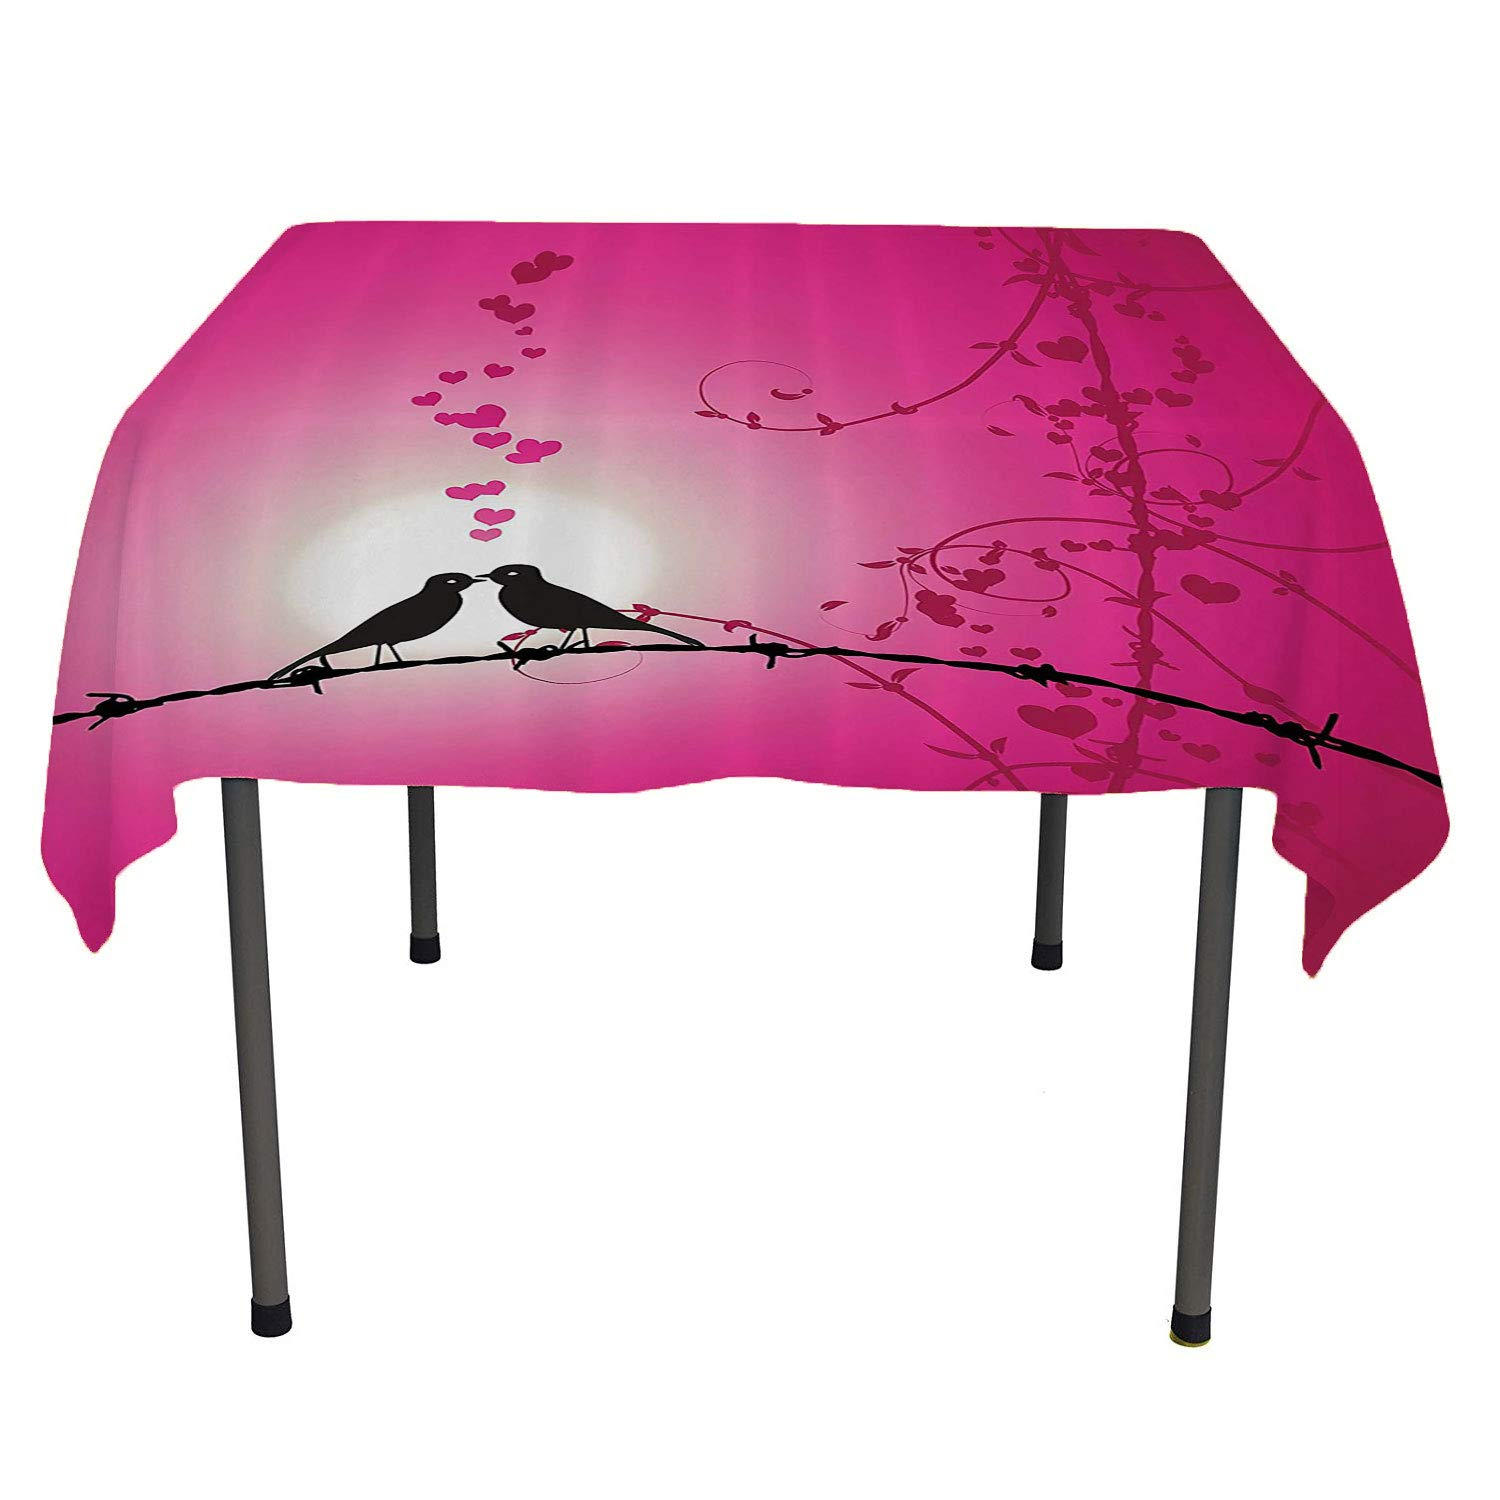 color12 60  W By 90  L Bamboo House Decor Collection BBQ Tablecloth Lined Up Bamboo Stems and Flower Silhouettes Shadow Eastern Tropical Exotic Image Red Cream Stain resistanttablecloth Spring Summer Party Picnic 60 by 84